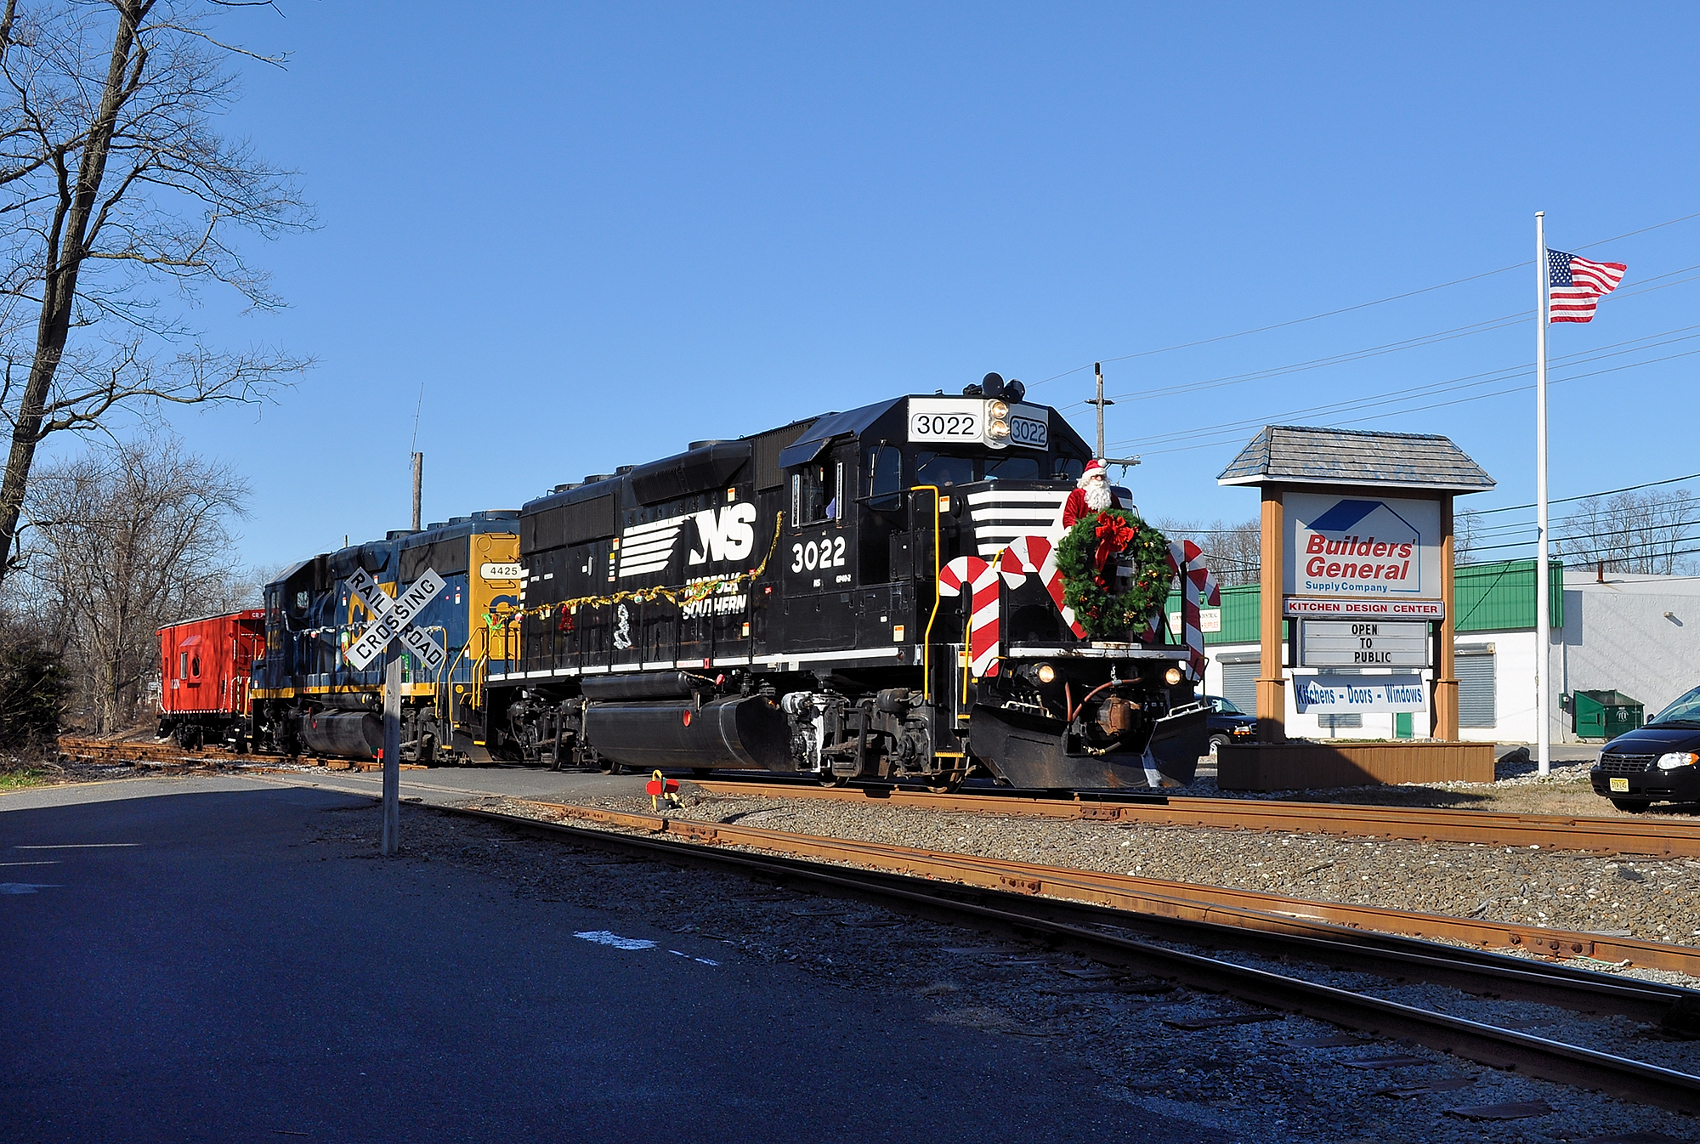 Conrail's Santa train en route to distribute toys at Christmas